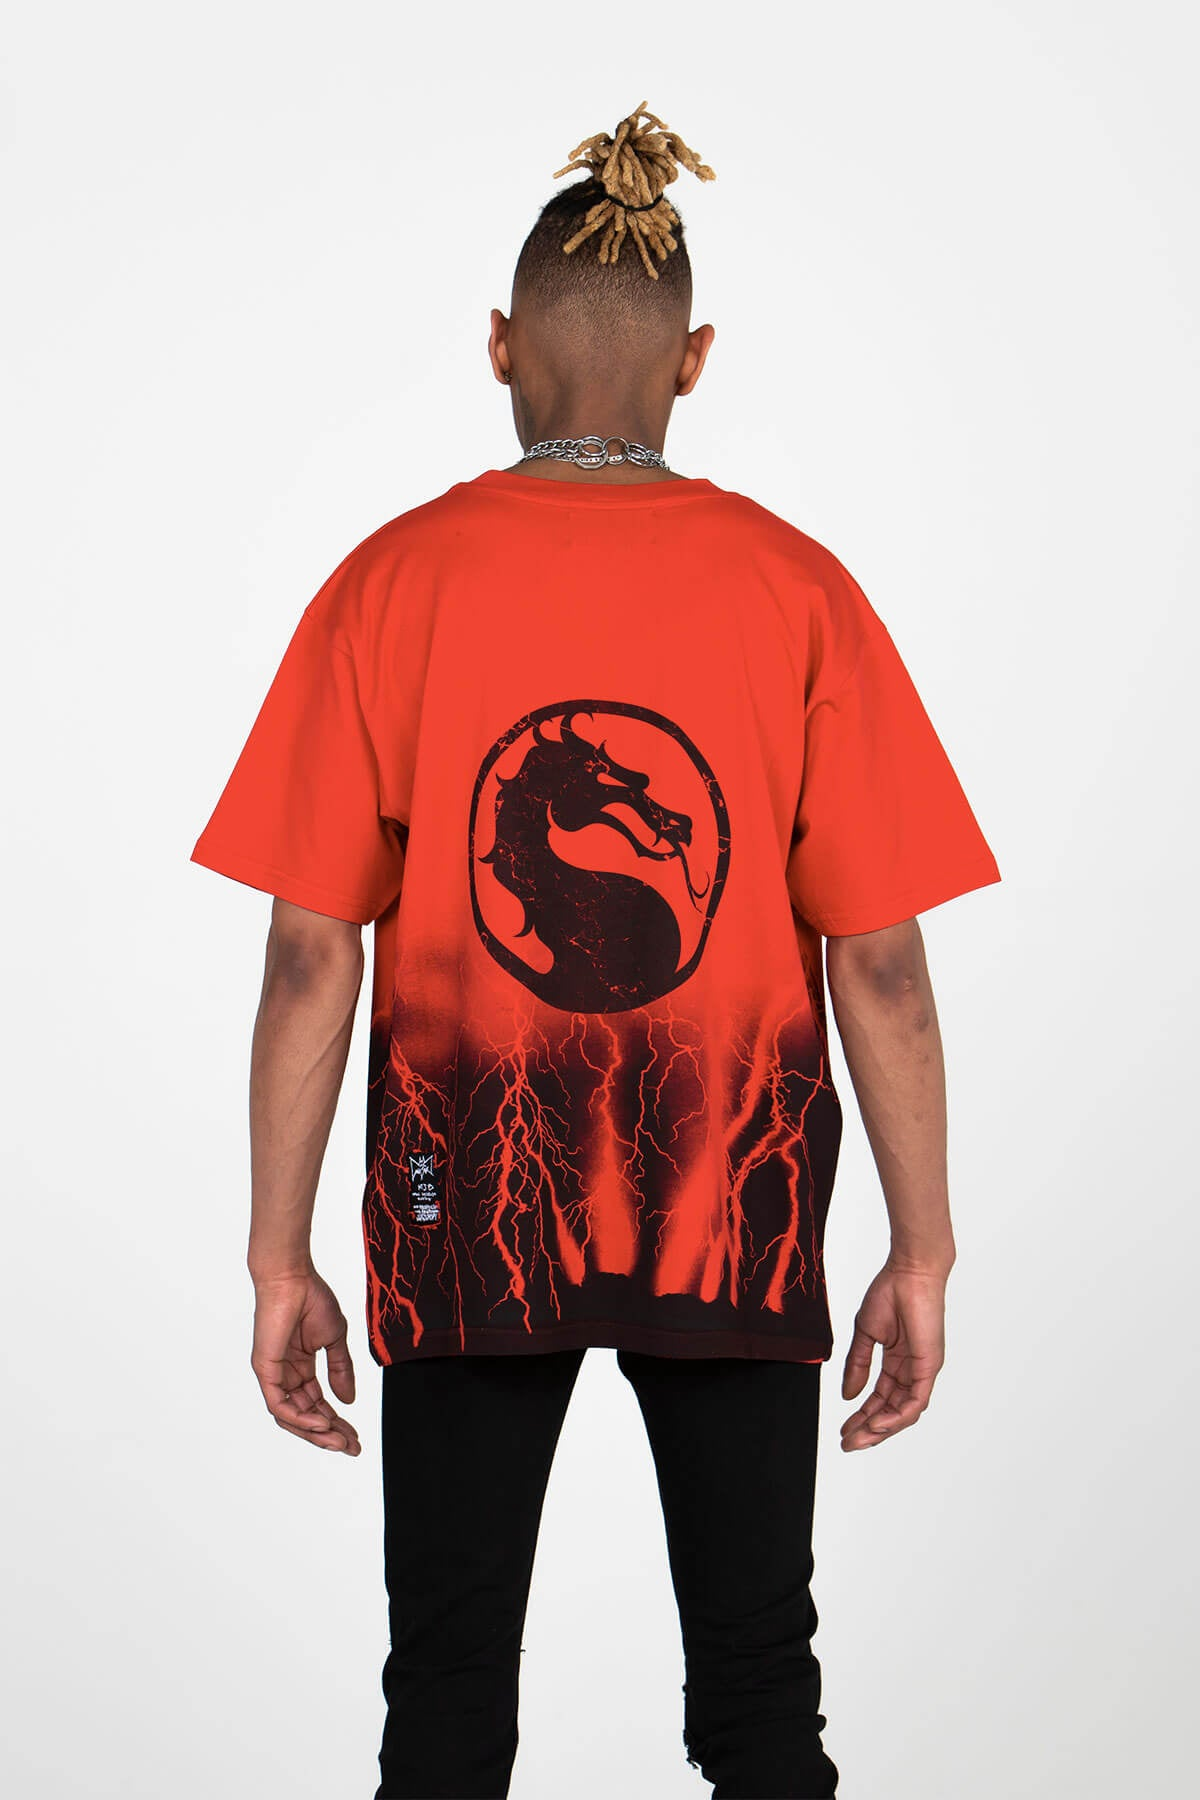 MORTAL KOMBAT X MJB (LIMITED EDITION) – FESTIVAL T SHIRT CRACKS - MJB